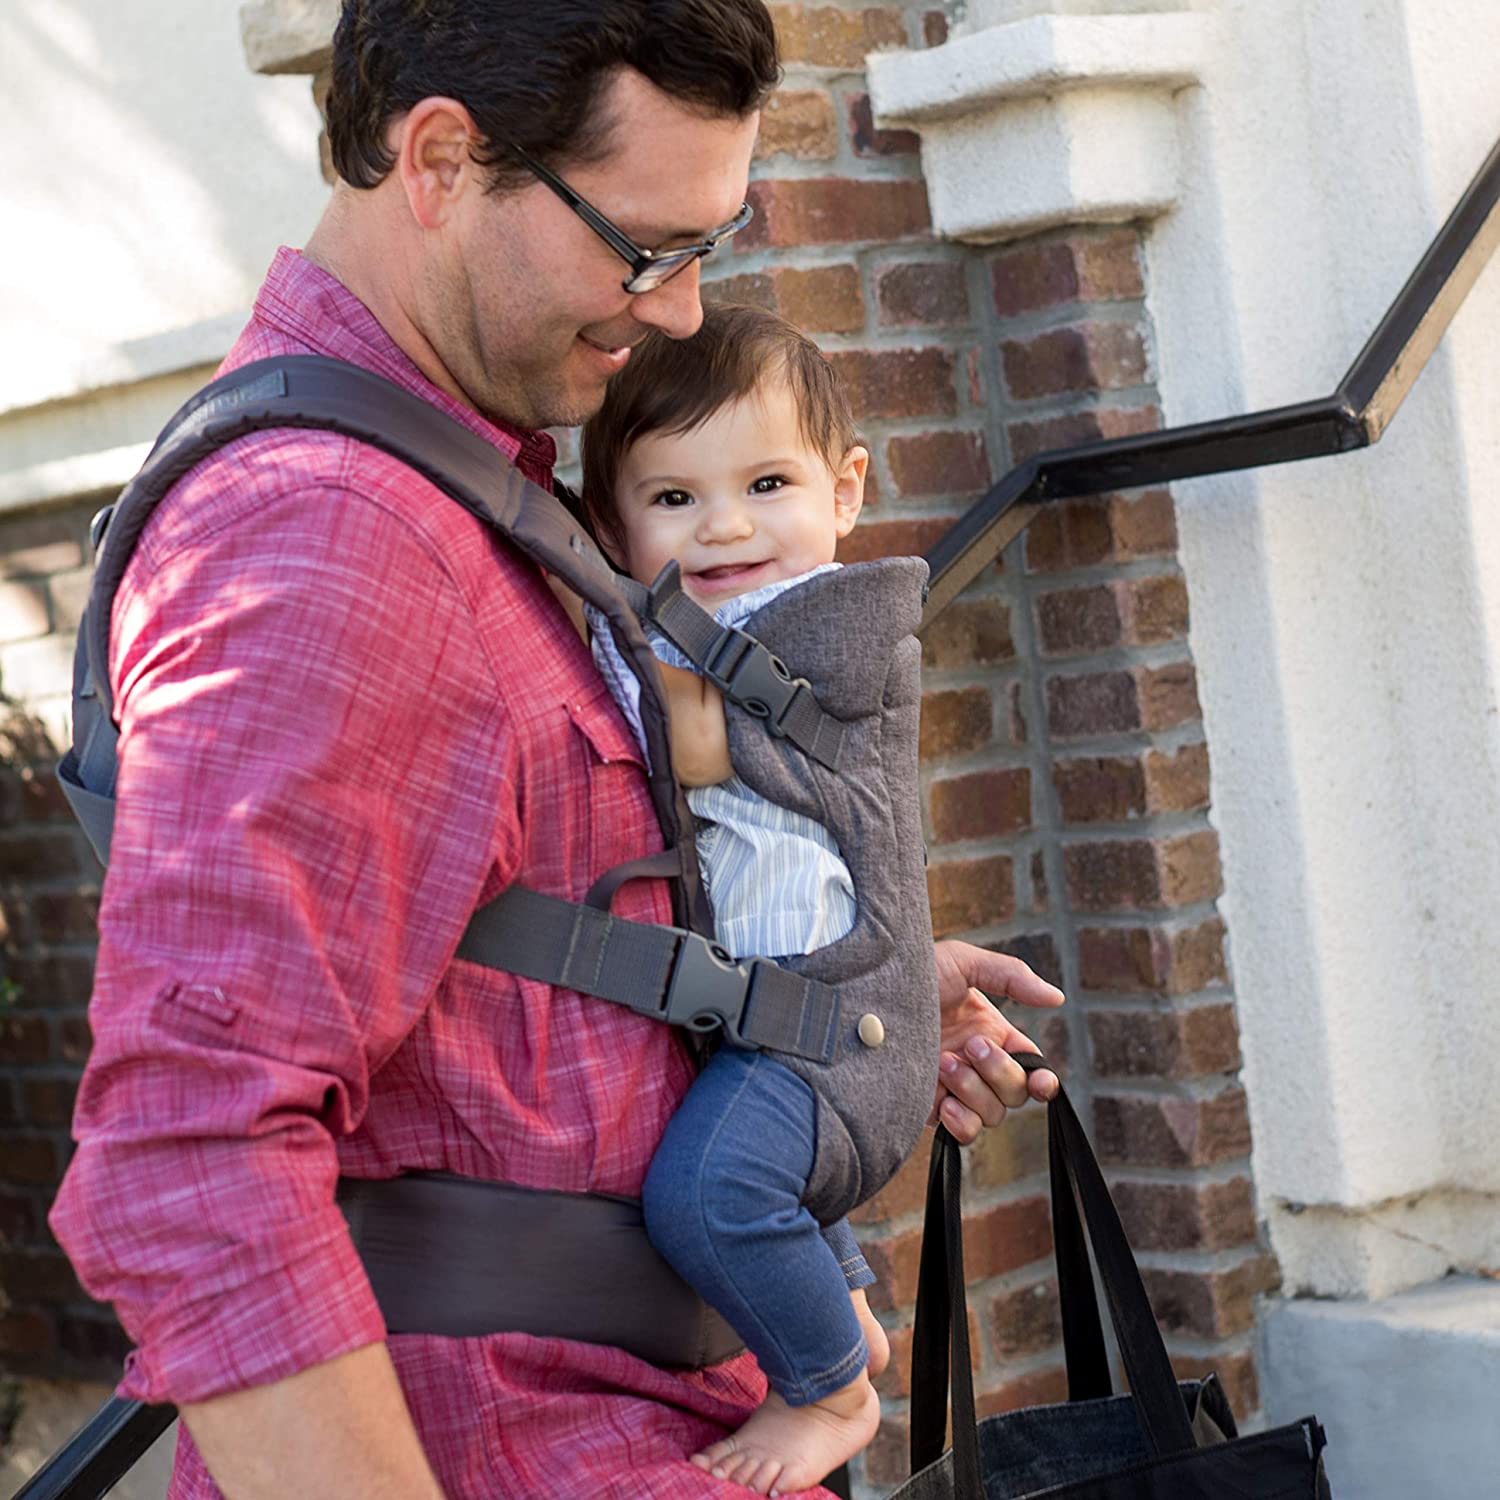 Infantino 4-In-1 Convertible Baby Carrier